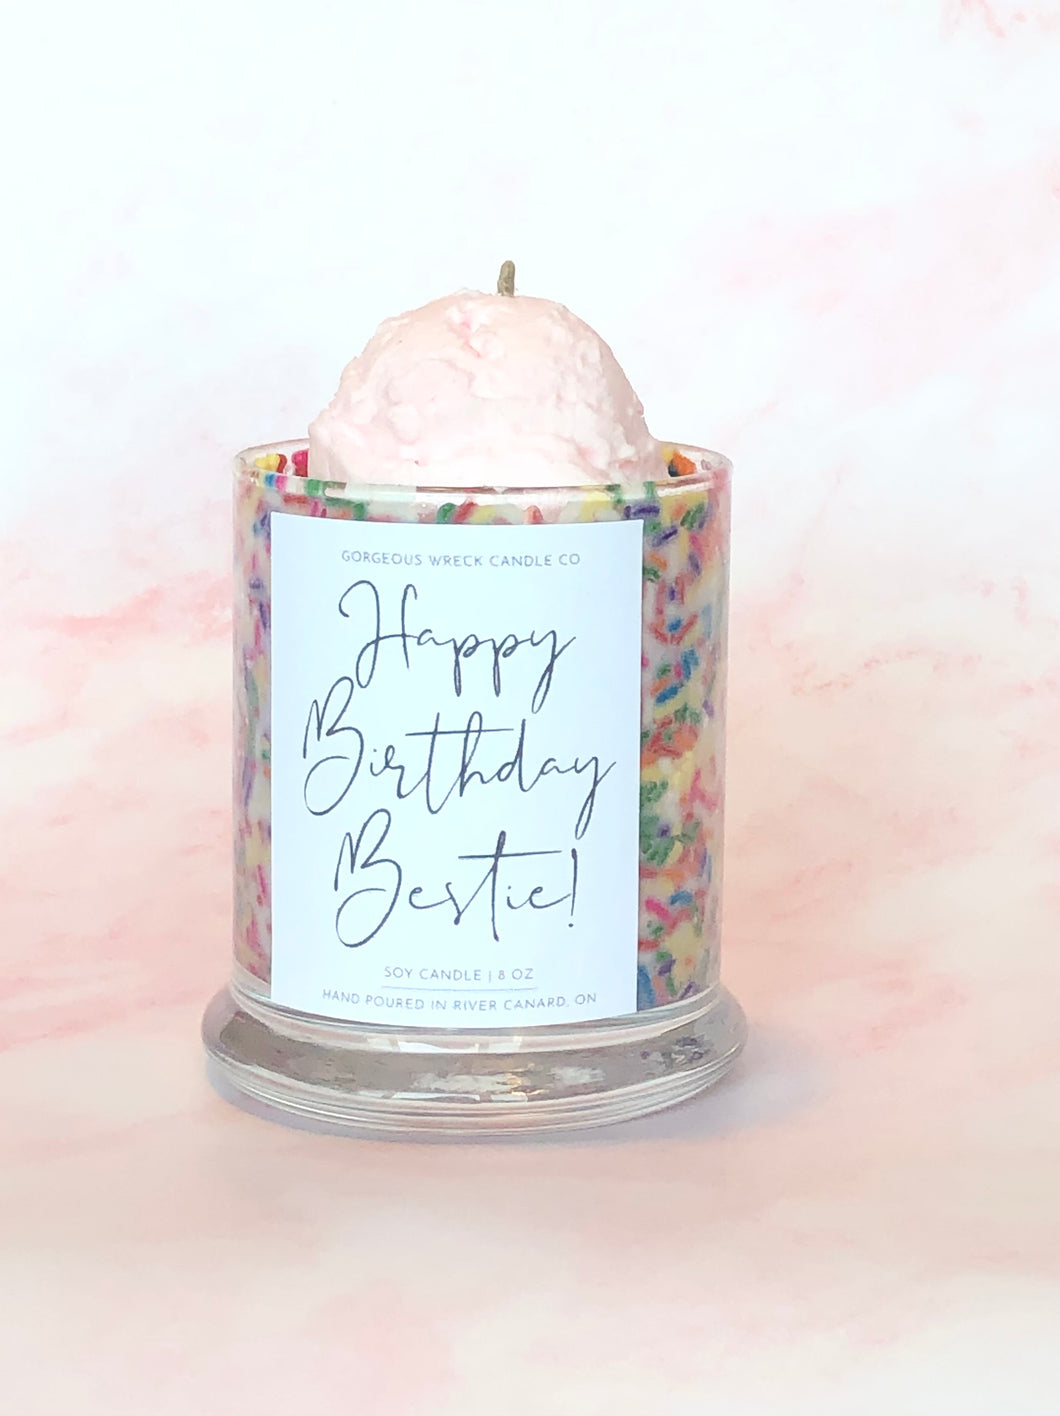 Personalized Birthday Candle 8 oz Soy Wax Home Decor Candle Decorative Candle Gift